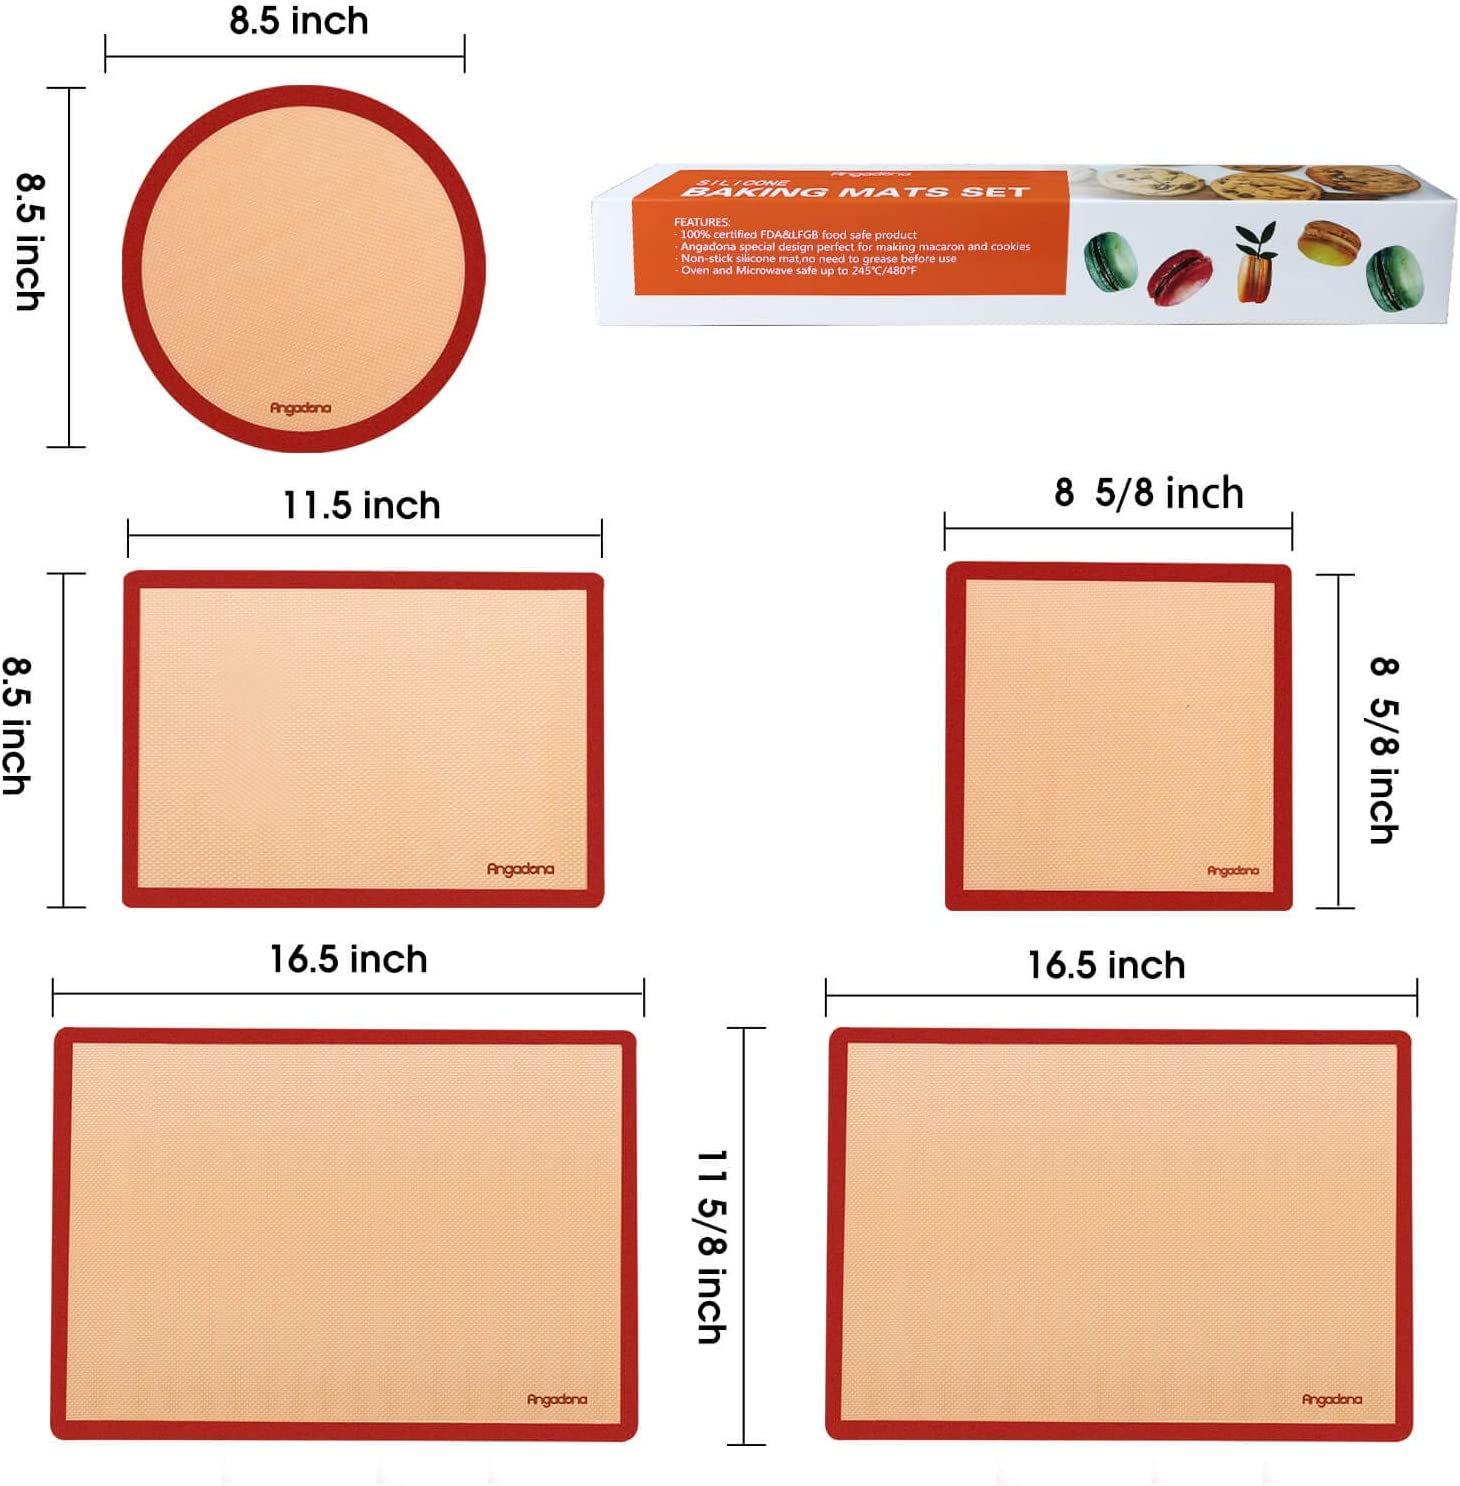 1 Round /& 1 Square Cake Pan Mat Silicone Baking Mats Set of 6-2 Half Sheets Mats 100/% Nonstick Reusable Silicone Mat- Bake Pastry for Cookie and Macaron 2 Quarter Sheet Liner